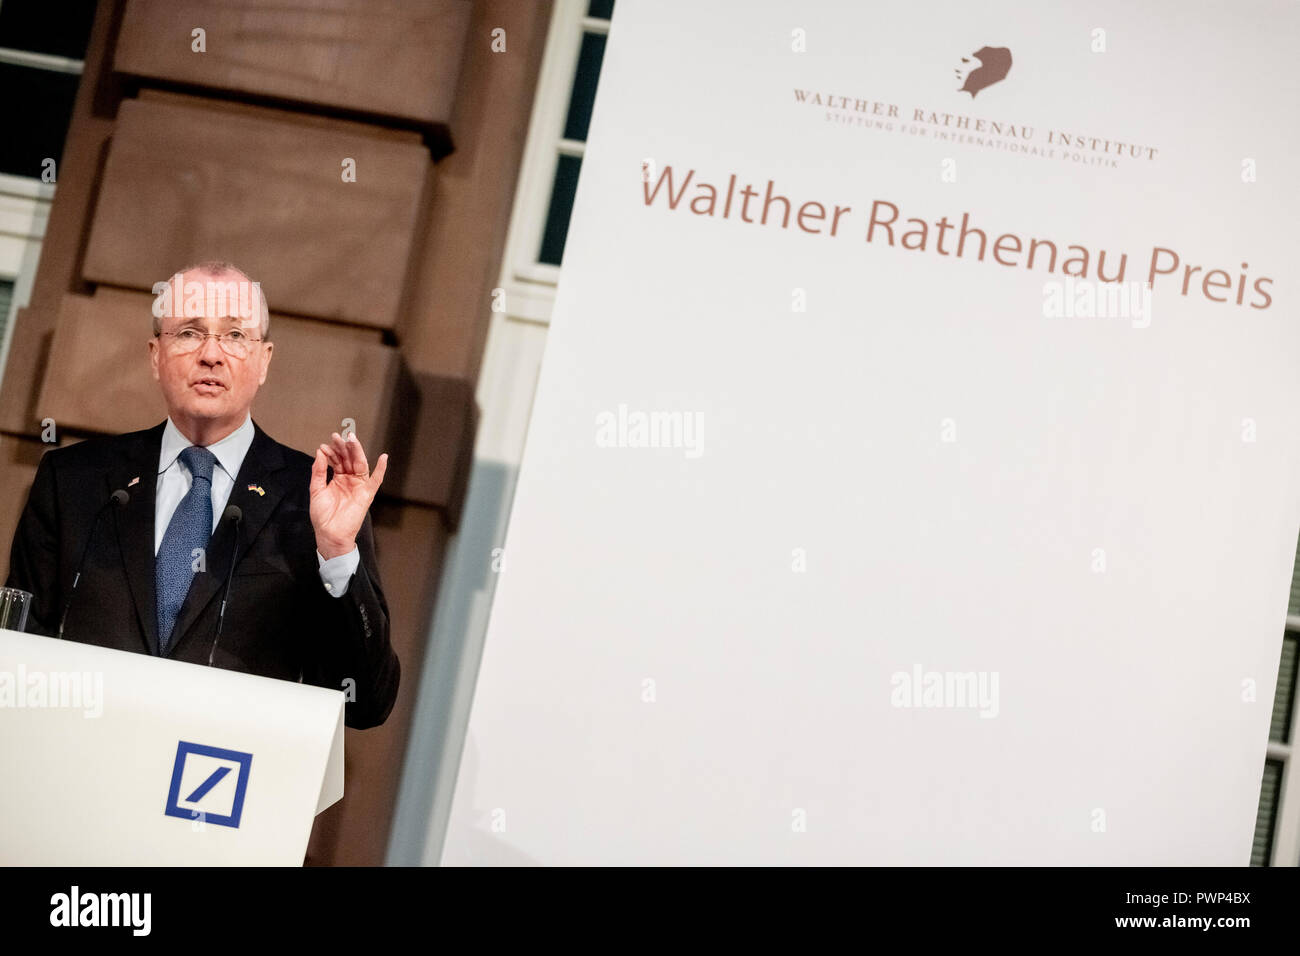 Berlin, Germany. 17th Oct, 2018. 17 October 2018, Germany, Berlin: Philip Murphy, Governor of New Jersey, speaks at the posthumous Rathenau Award 2018 to Guido Westerwelle. Westerwelle is posthumously honoured by the Walther Rathenau Institute, Foundation for International Politics, 'for his work in the sense of a peaceful world order based on international understanding'. Credit: Christoph Soeder/dpa/Alamy Live News - Stock Image